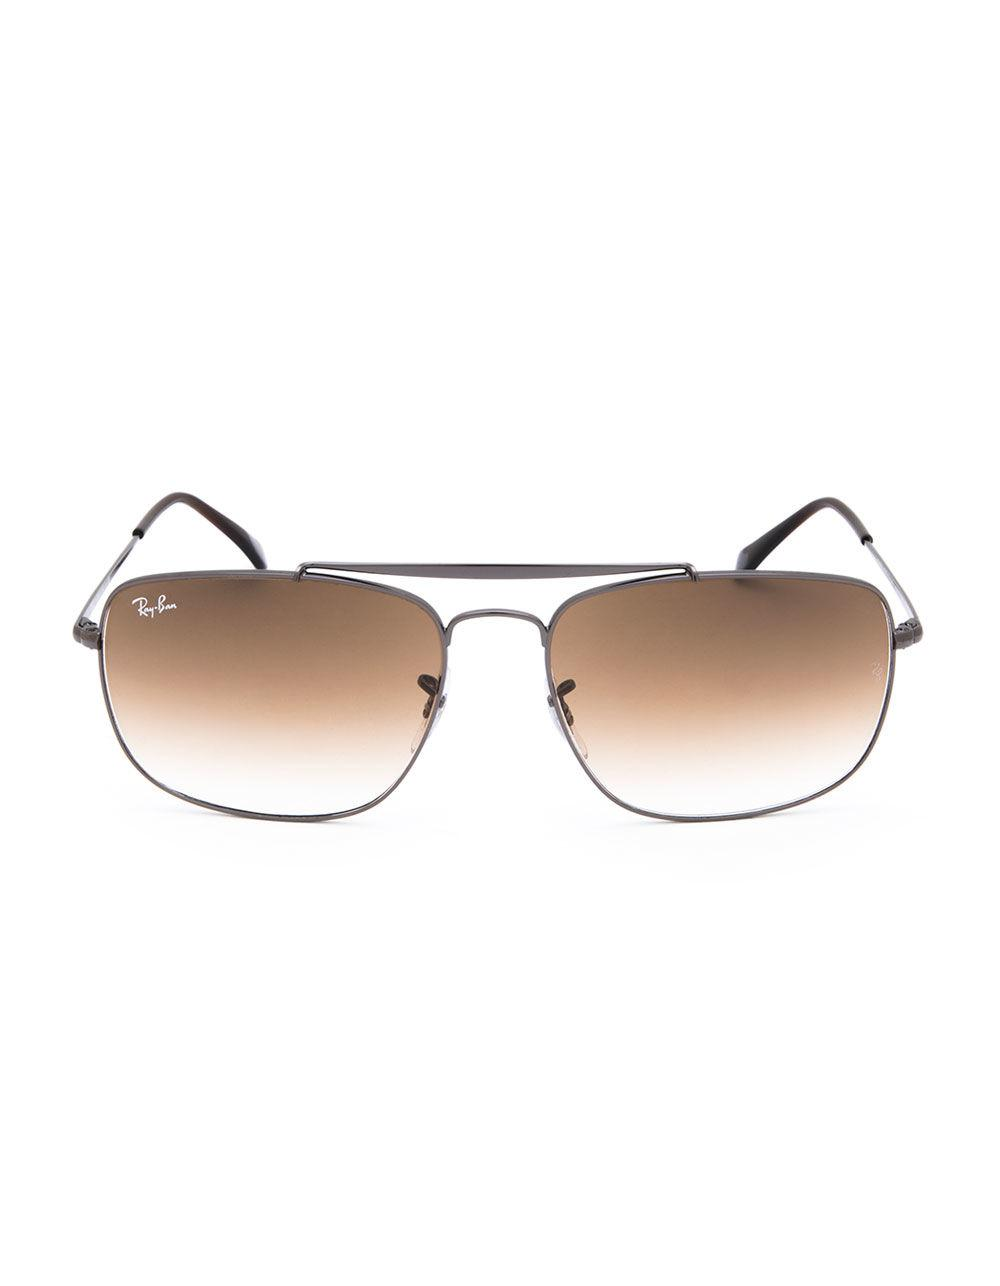 ac66845984f Lyst - Ray-Ban Colonel Gunmetal   Light Brown Gradient Sunglasses in Brown  for Men